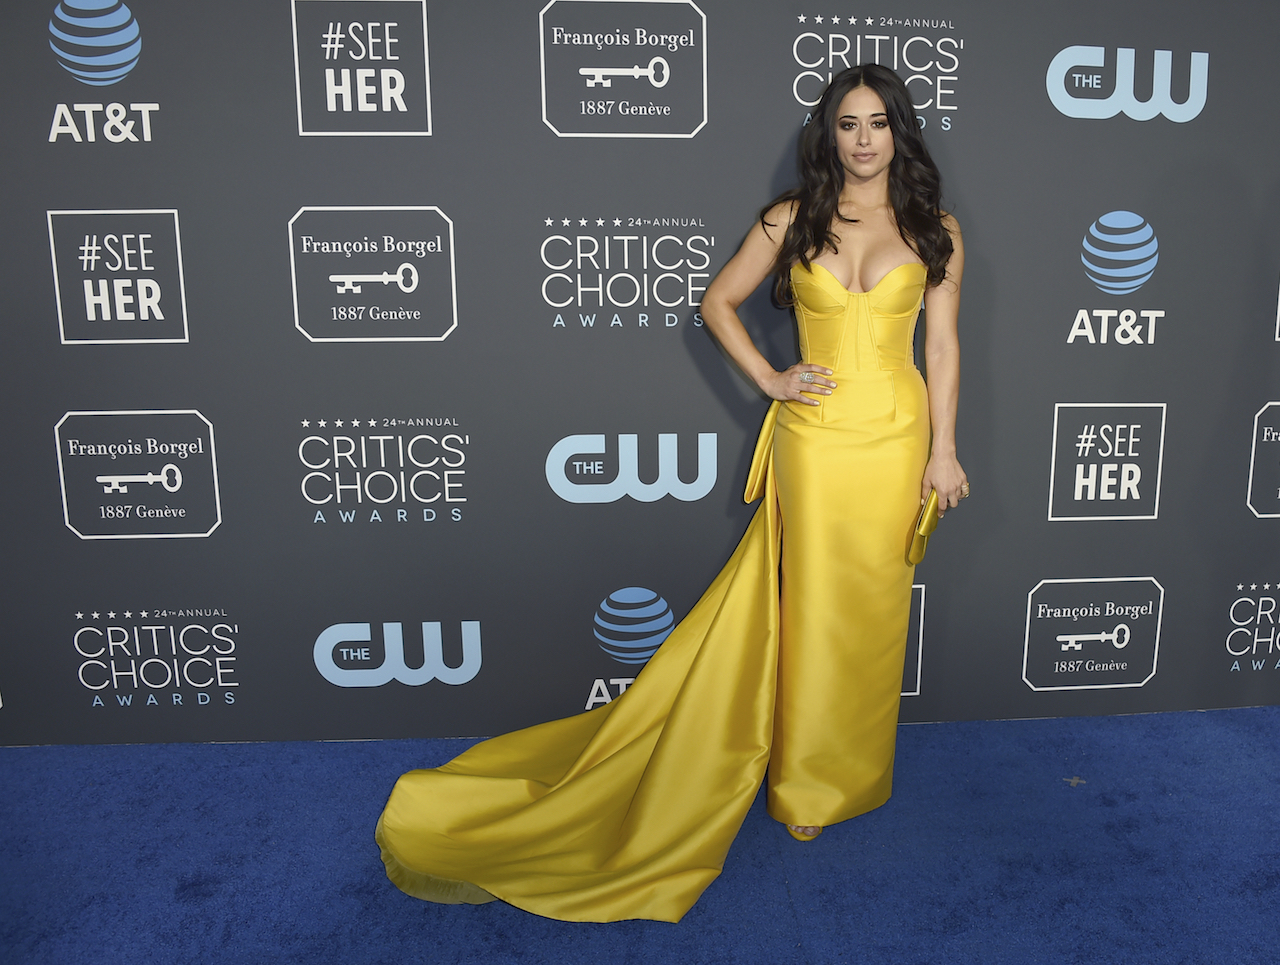 <div class='meta'><div class='origin-logo' data-origin='AP'></div><span class='caption-text' data-credit='Jordan Strauss/Invision/AP'>Jeanine Mason arrives at the 24th annual Critics' Choice Awards on Sunday, Jan. 13, 2019, at the Barker Hangar in Santa Monica, Calif.</span></div>